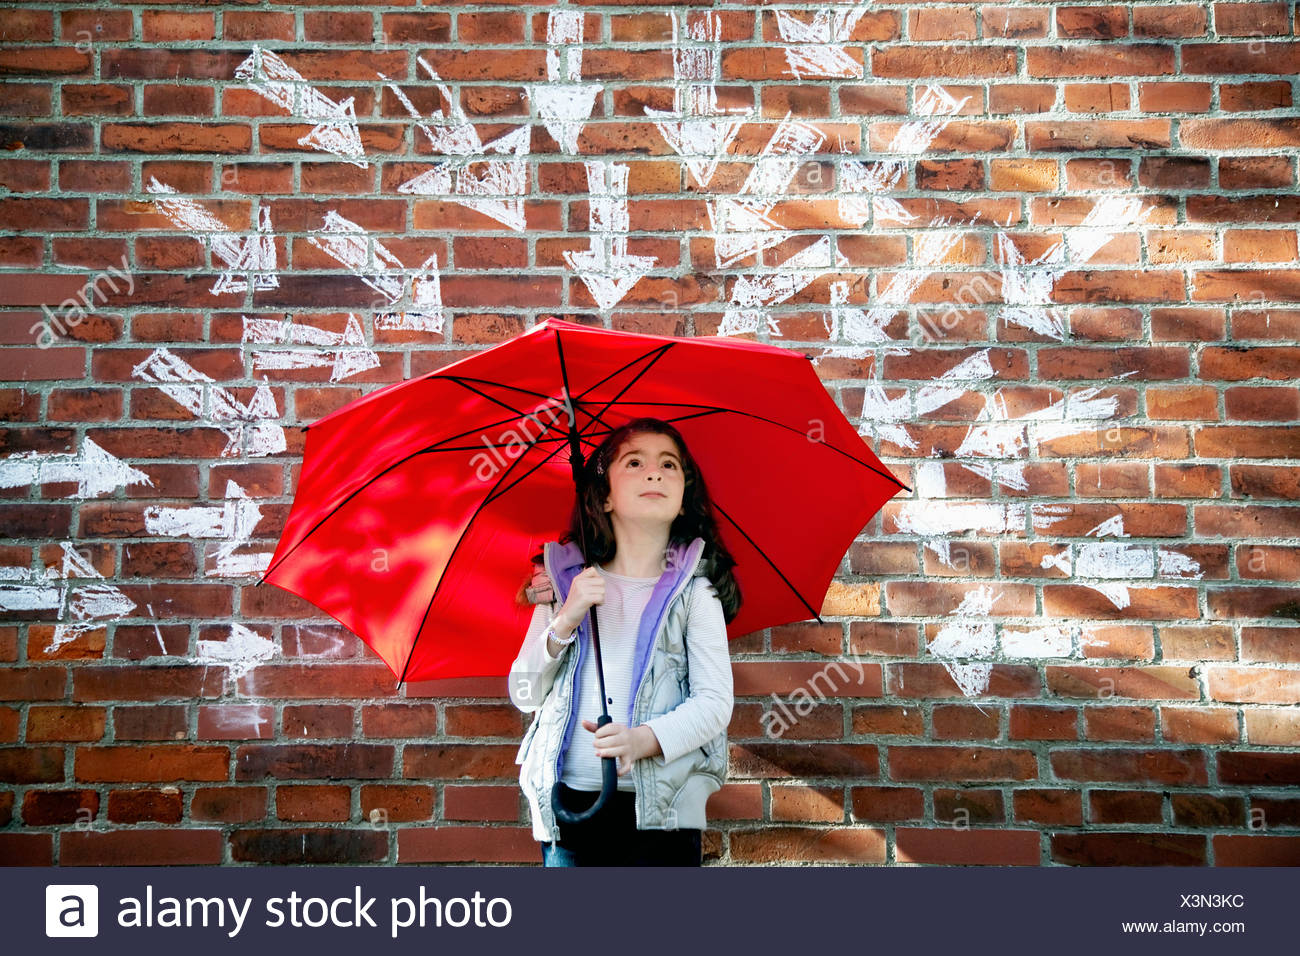 young girl with red umbrella in front of brick wall surrounded by arrows Stock Photo